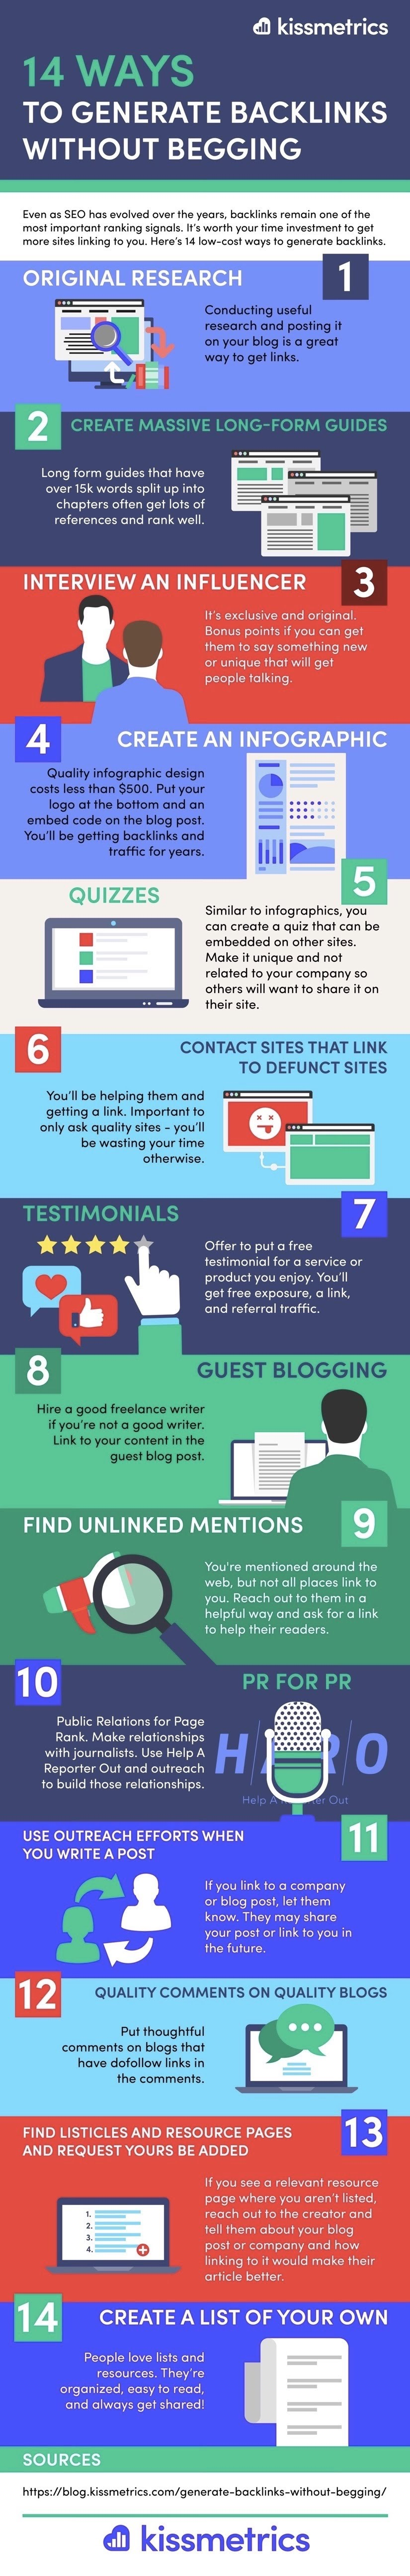 14 Ways to Get Backlinks Without Begging - #infographic